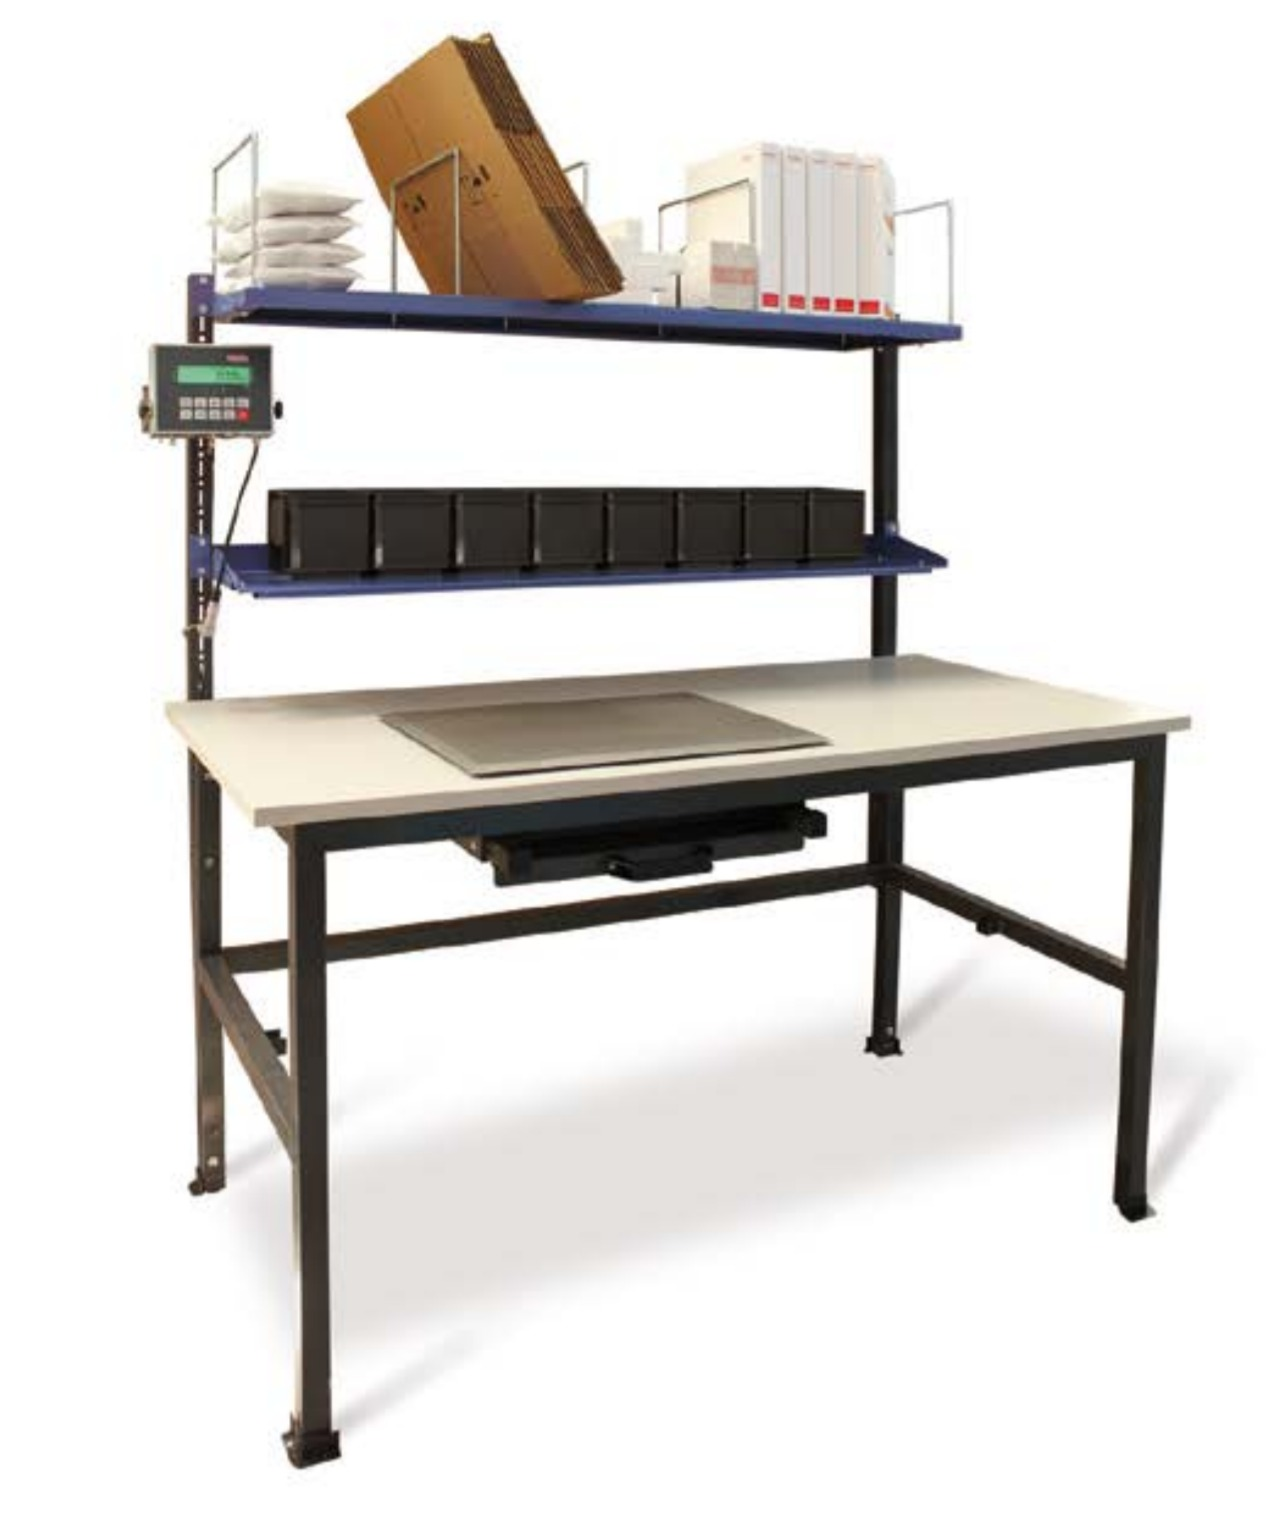 Packing table solutions